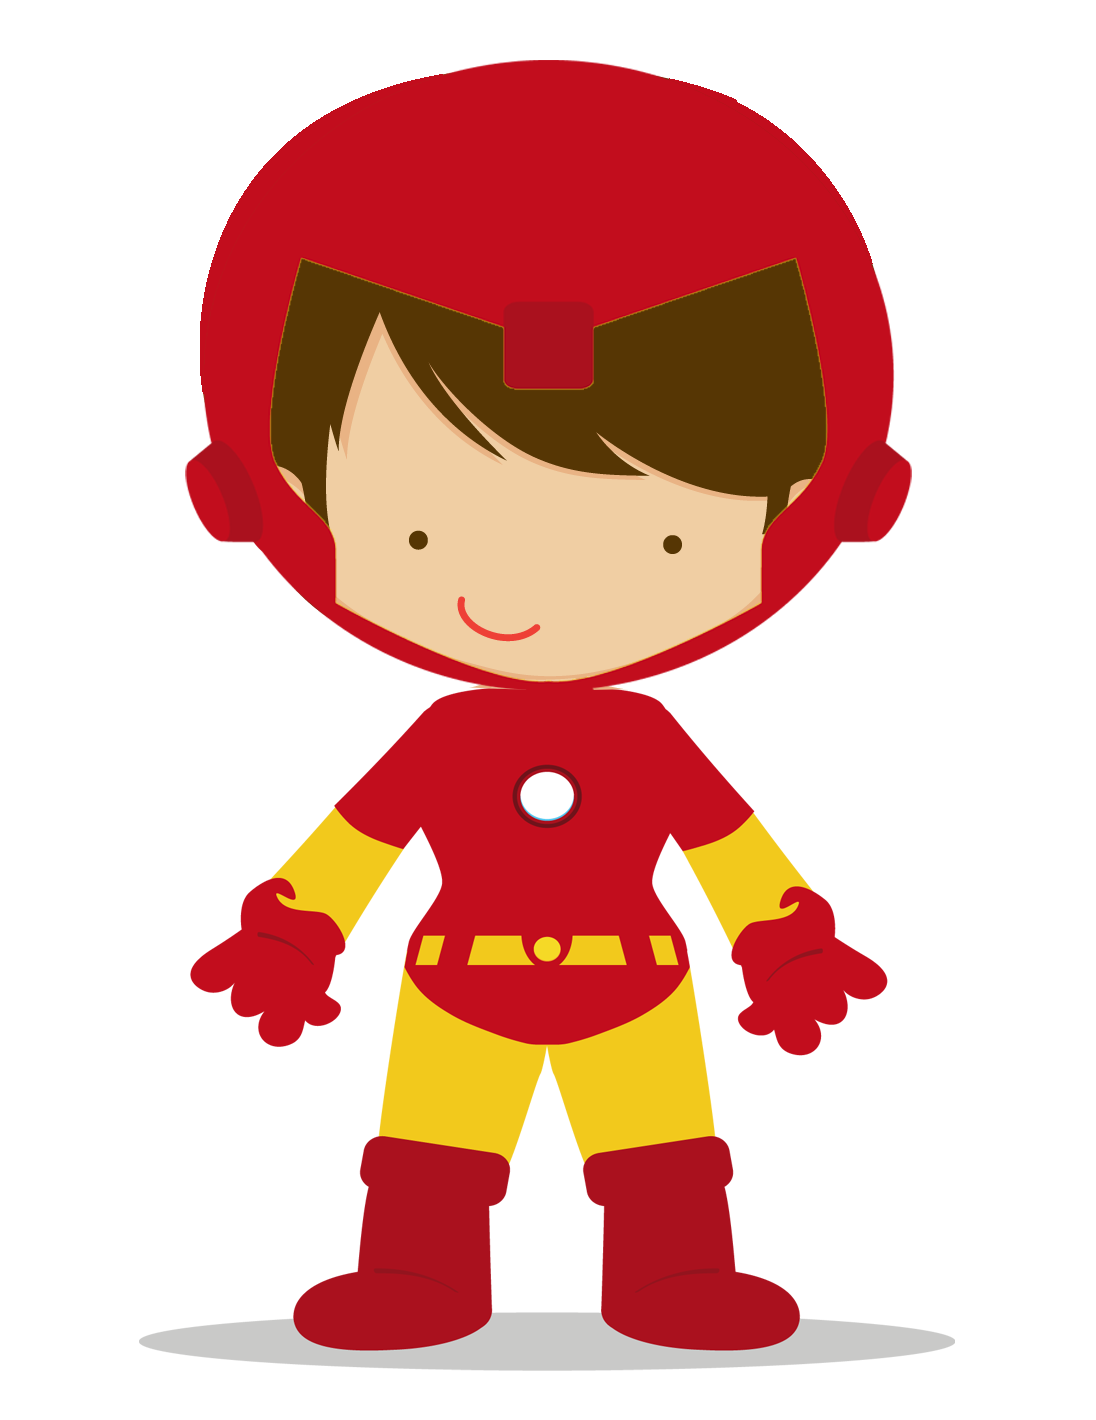 Ibpnd yr bbea png. Number 1 clipart superhero